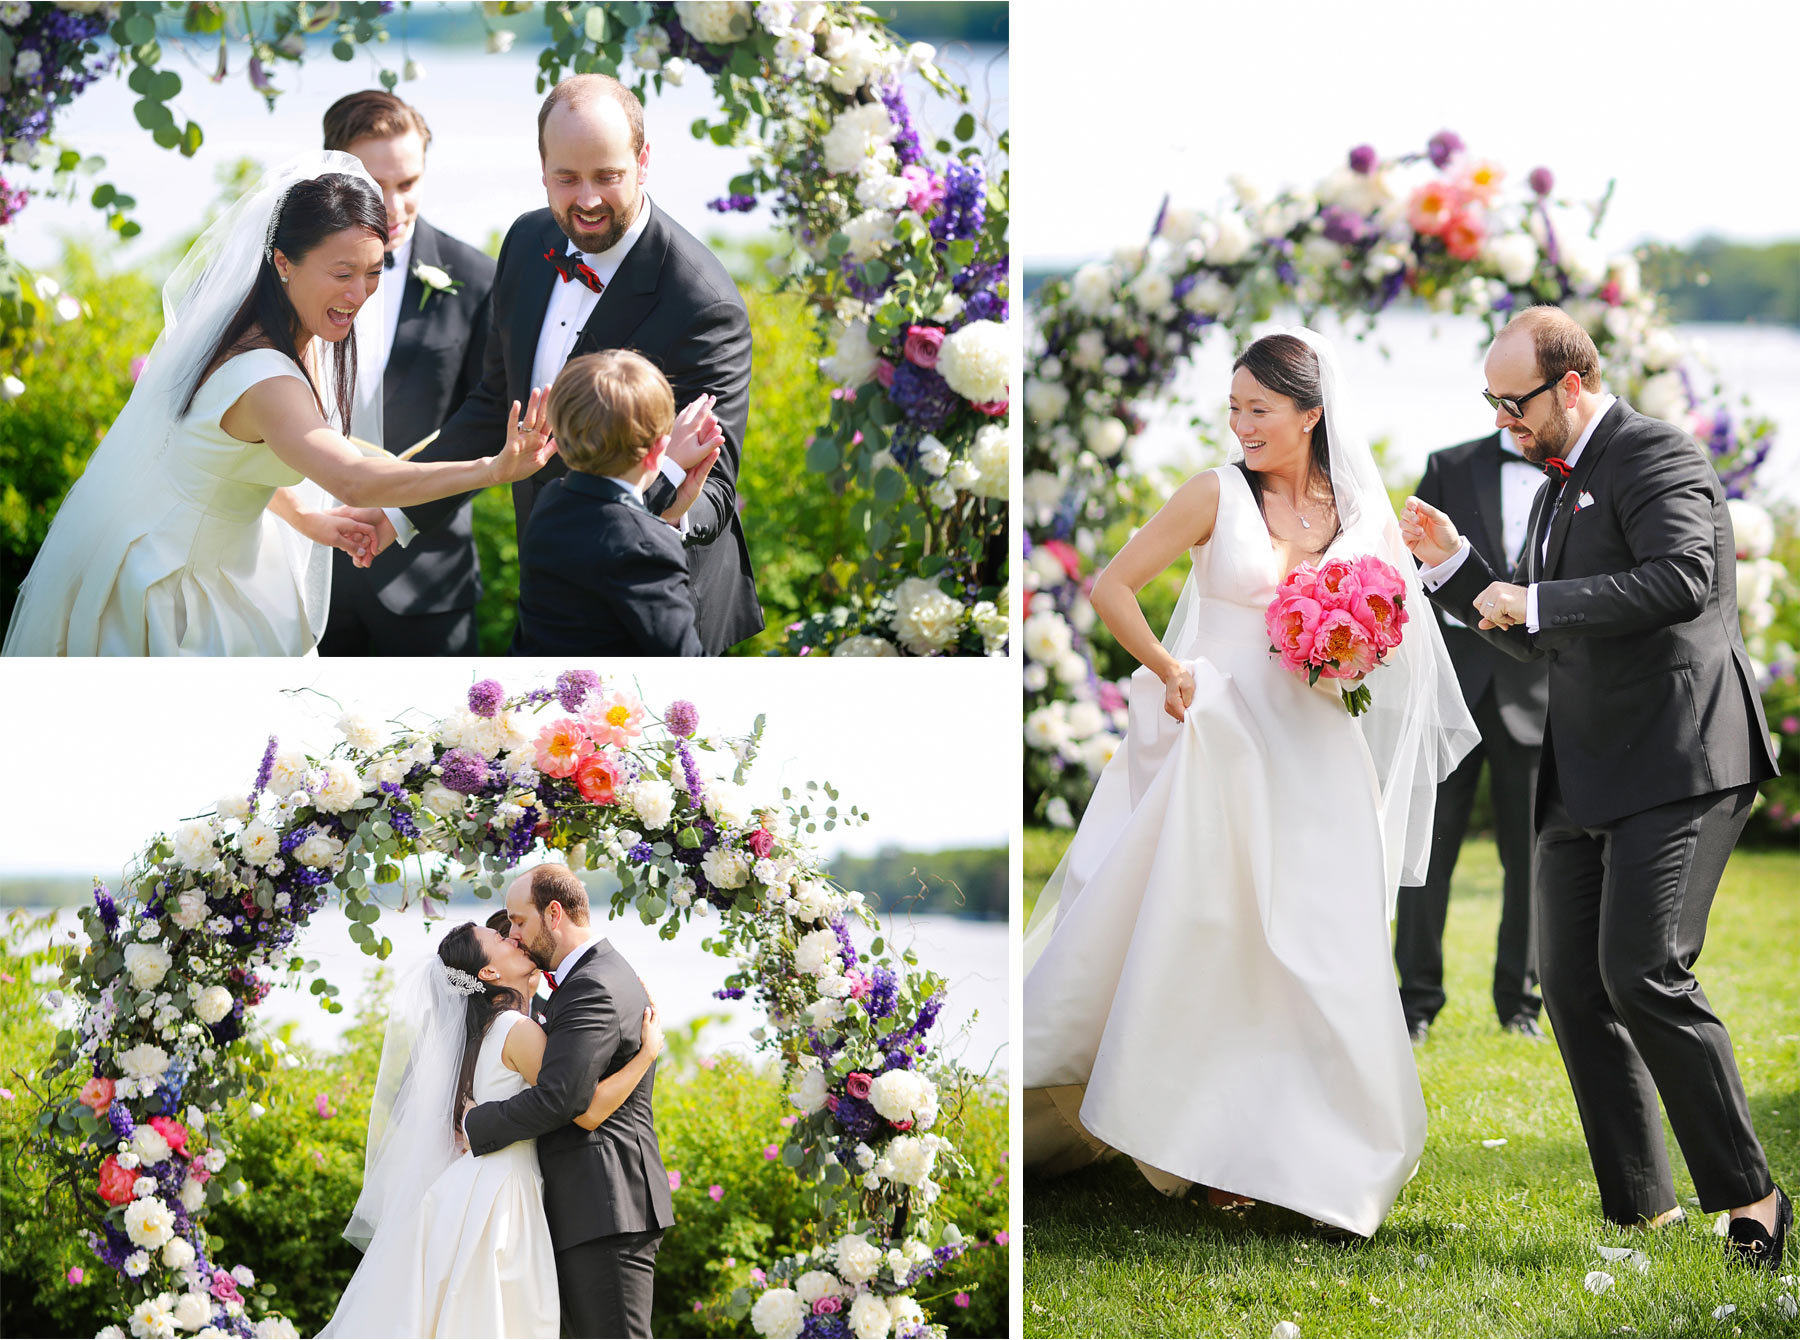 14-Vick-Photography-Wedding-Stouts-Island-Lodge-Wisconsin-Summer-Ceremony-Outdoor-Bride-Groom-Flowers-Kiss-MiJa-and-Lucius.jpg